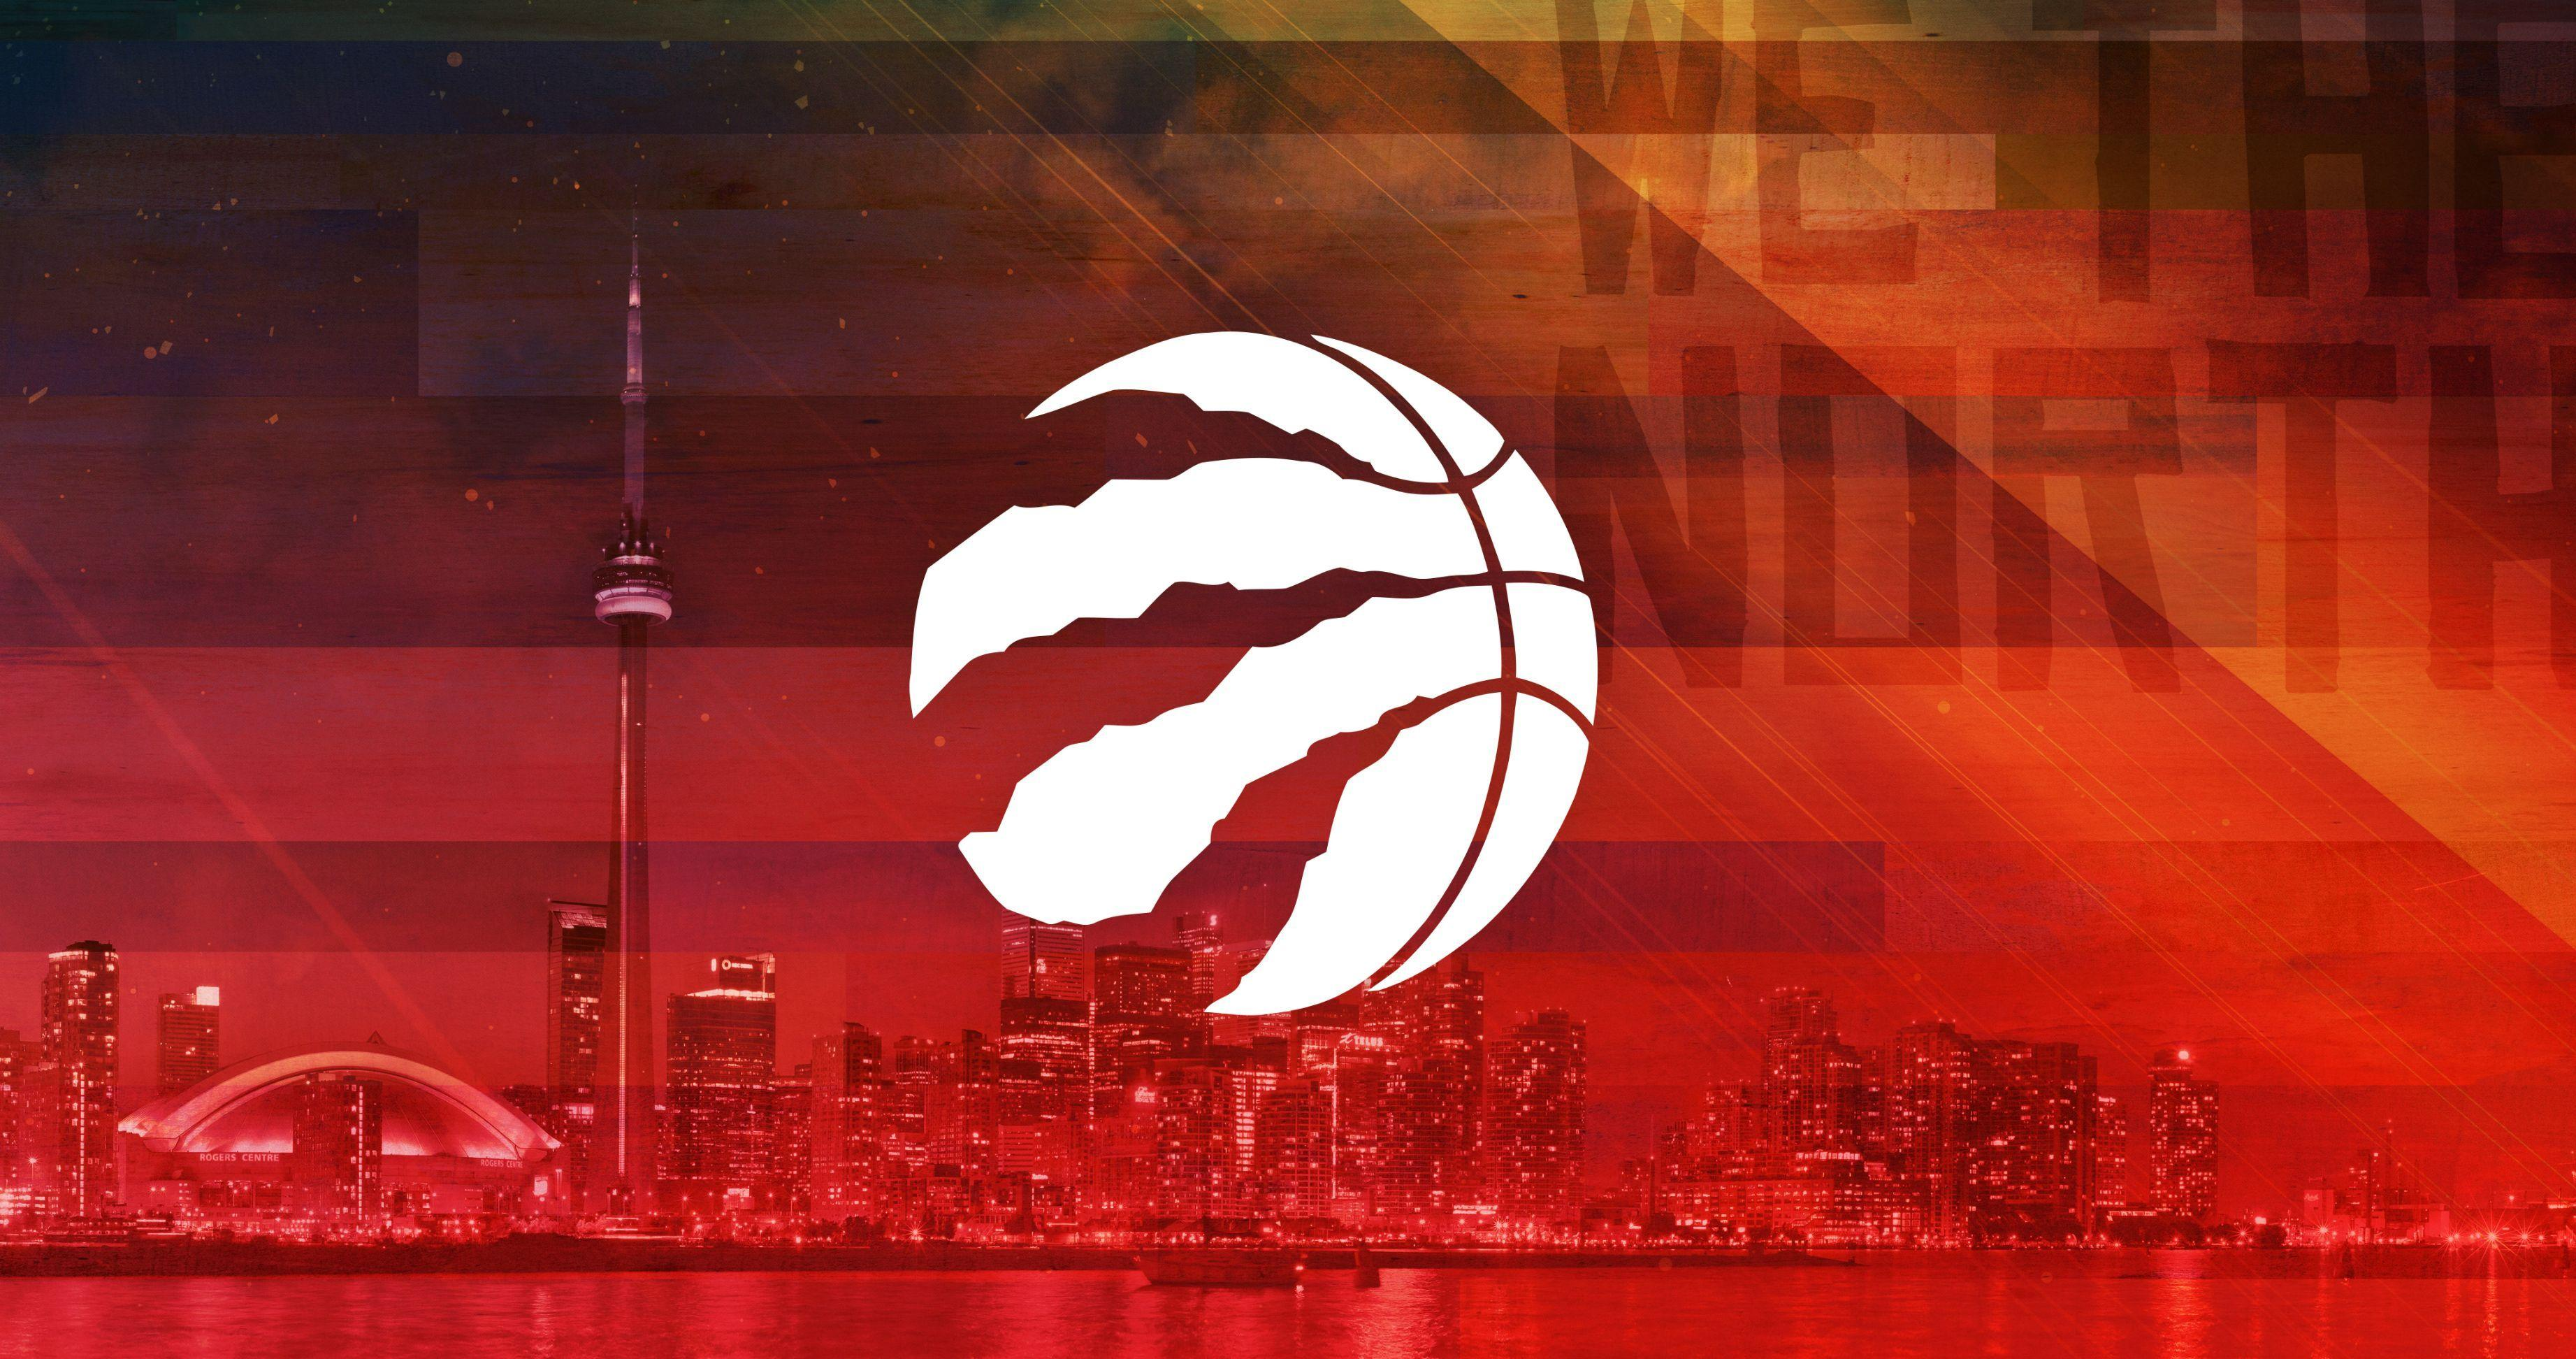 I made a Toronto Raptors wallpapers for myself and wanted to share